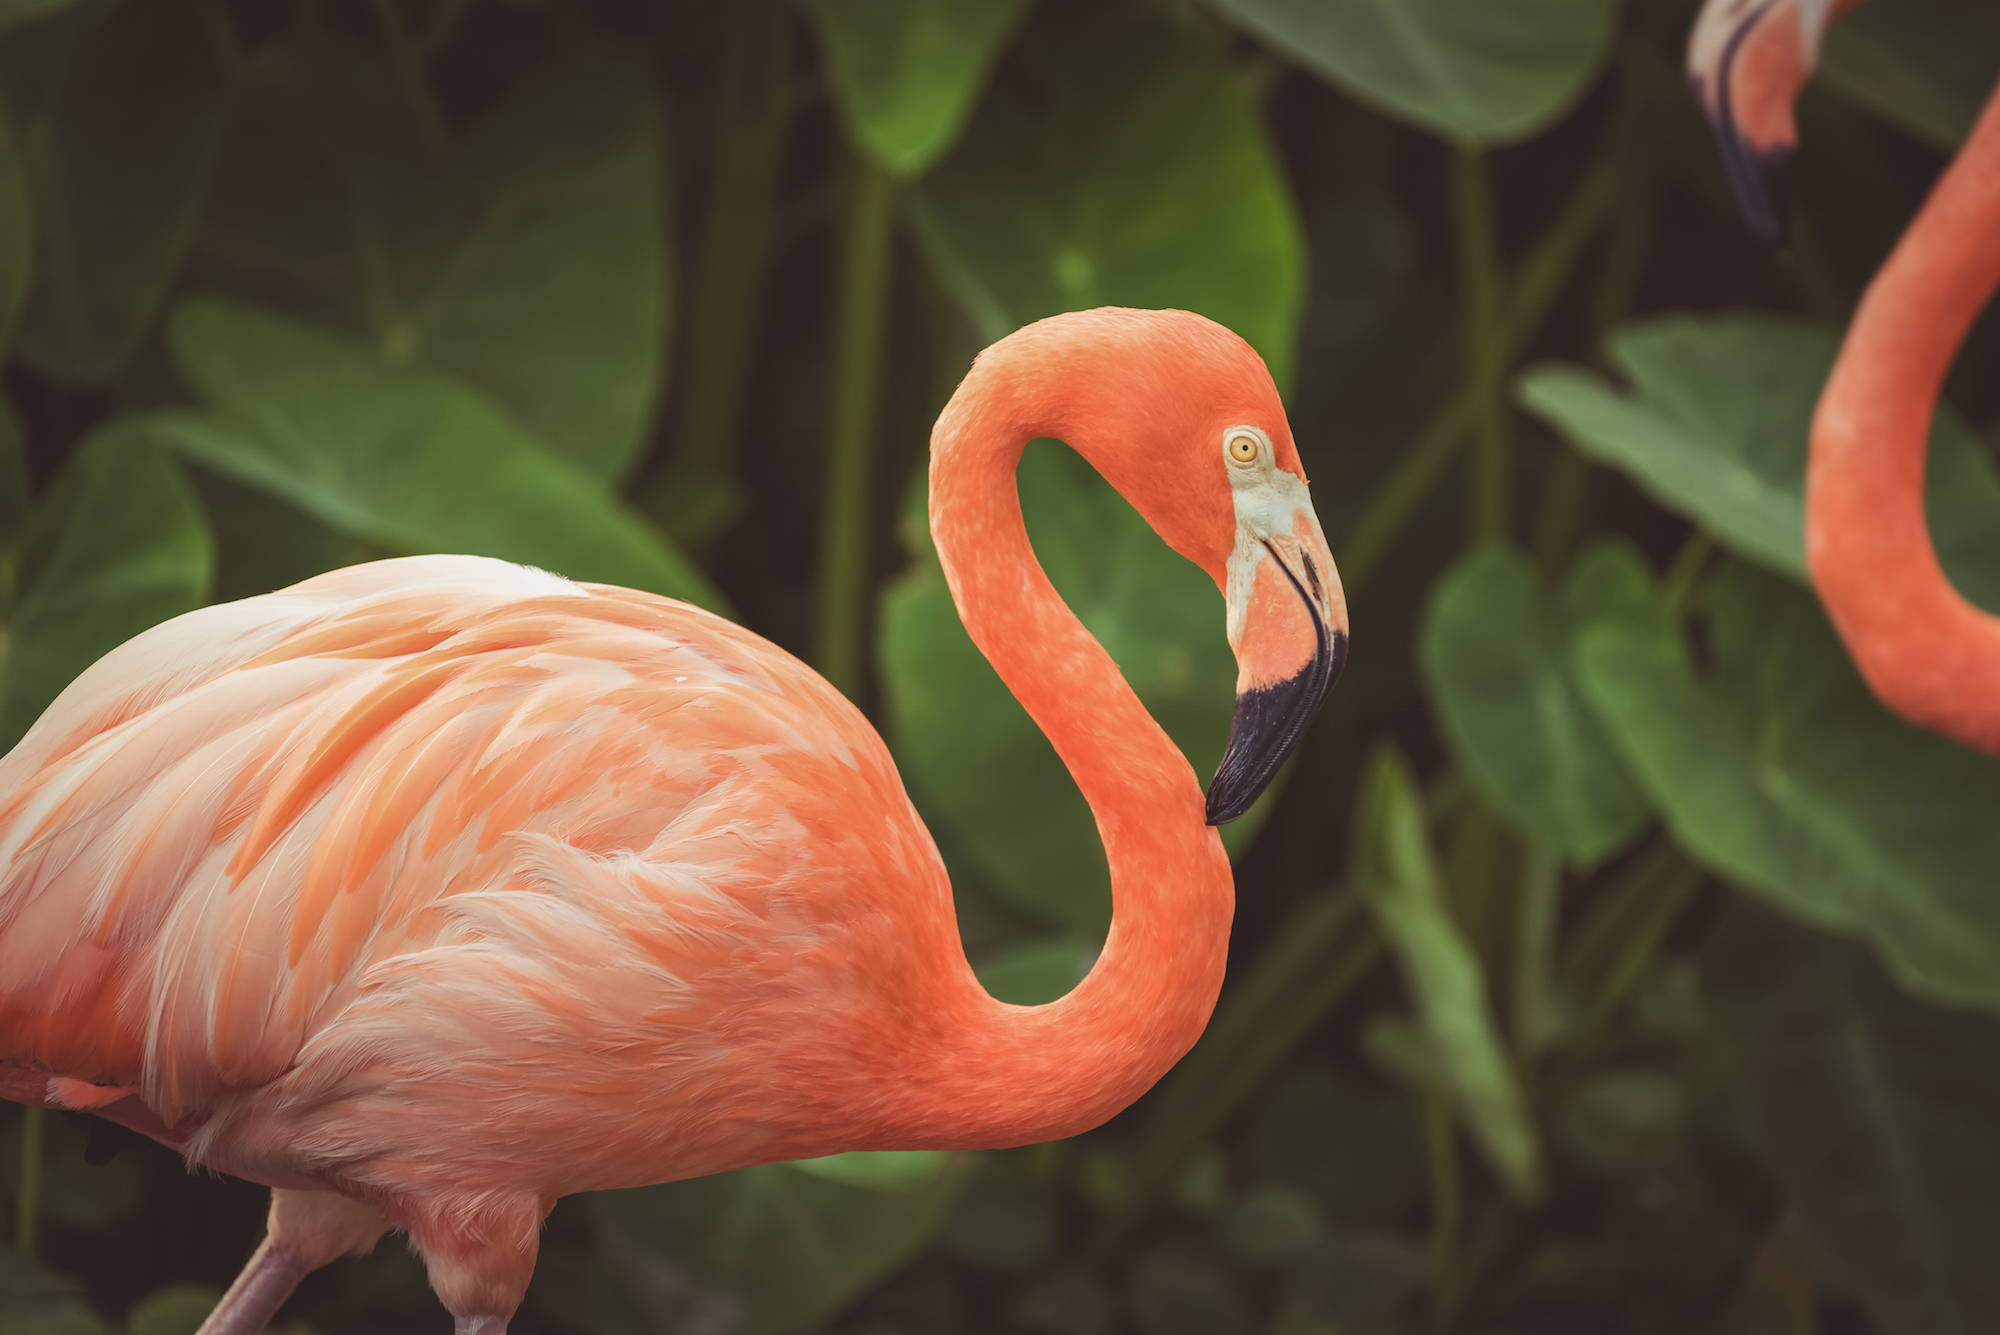 Astaxanthin, considered the most powerful antioxidant, is the reason for the pink colouring of flamingoes